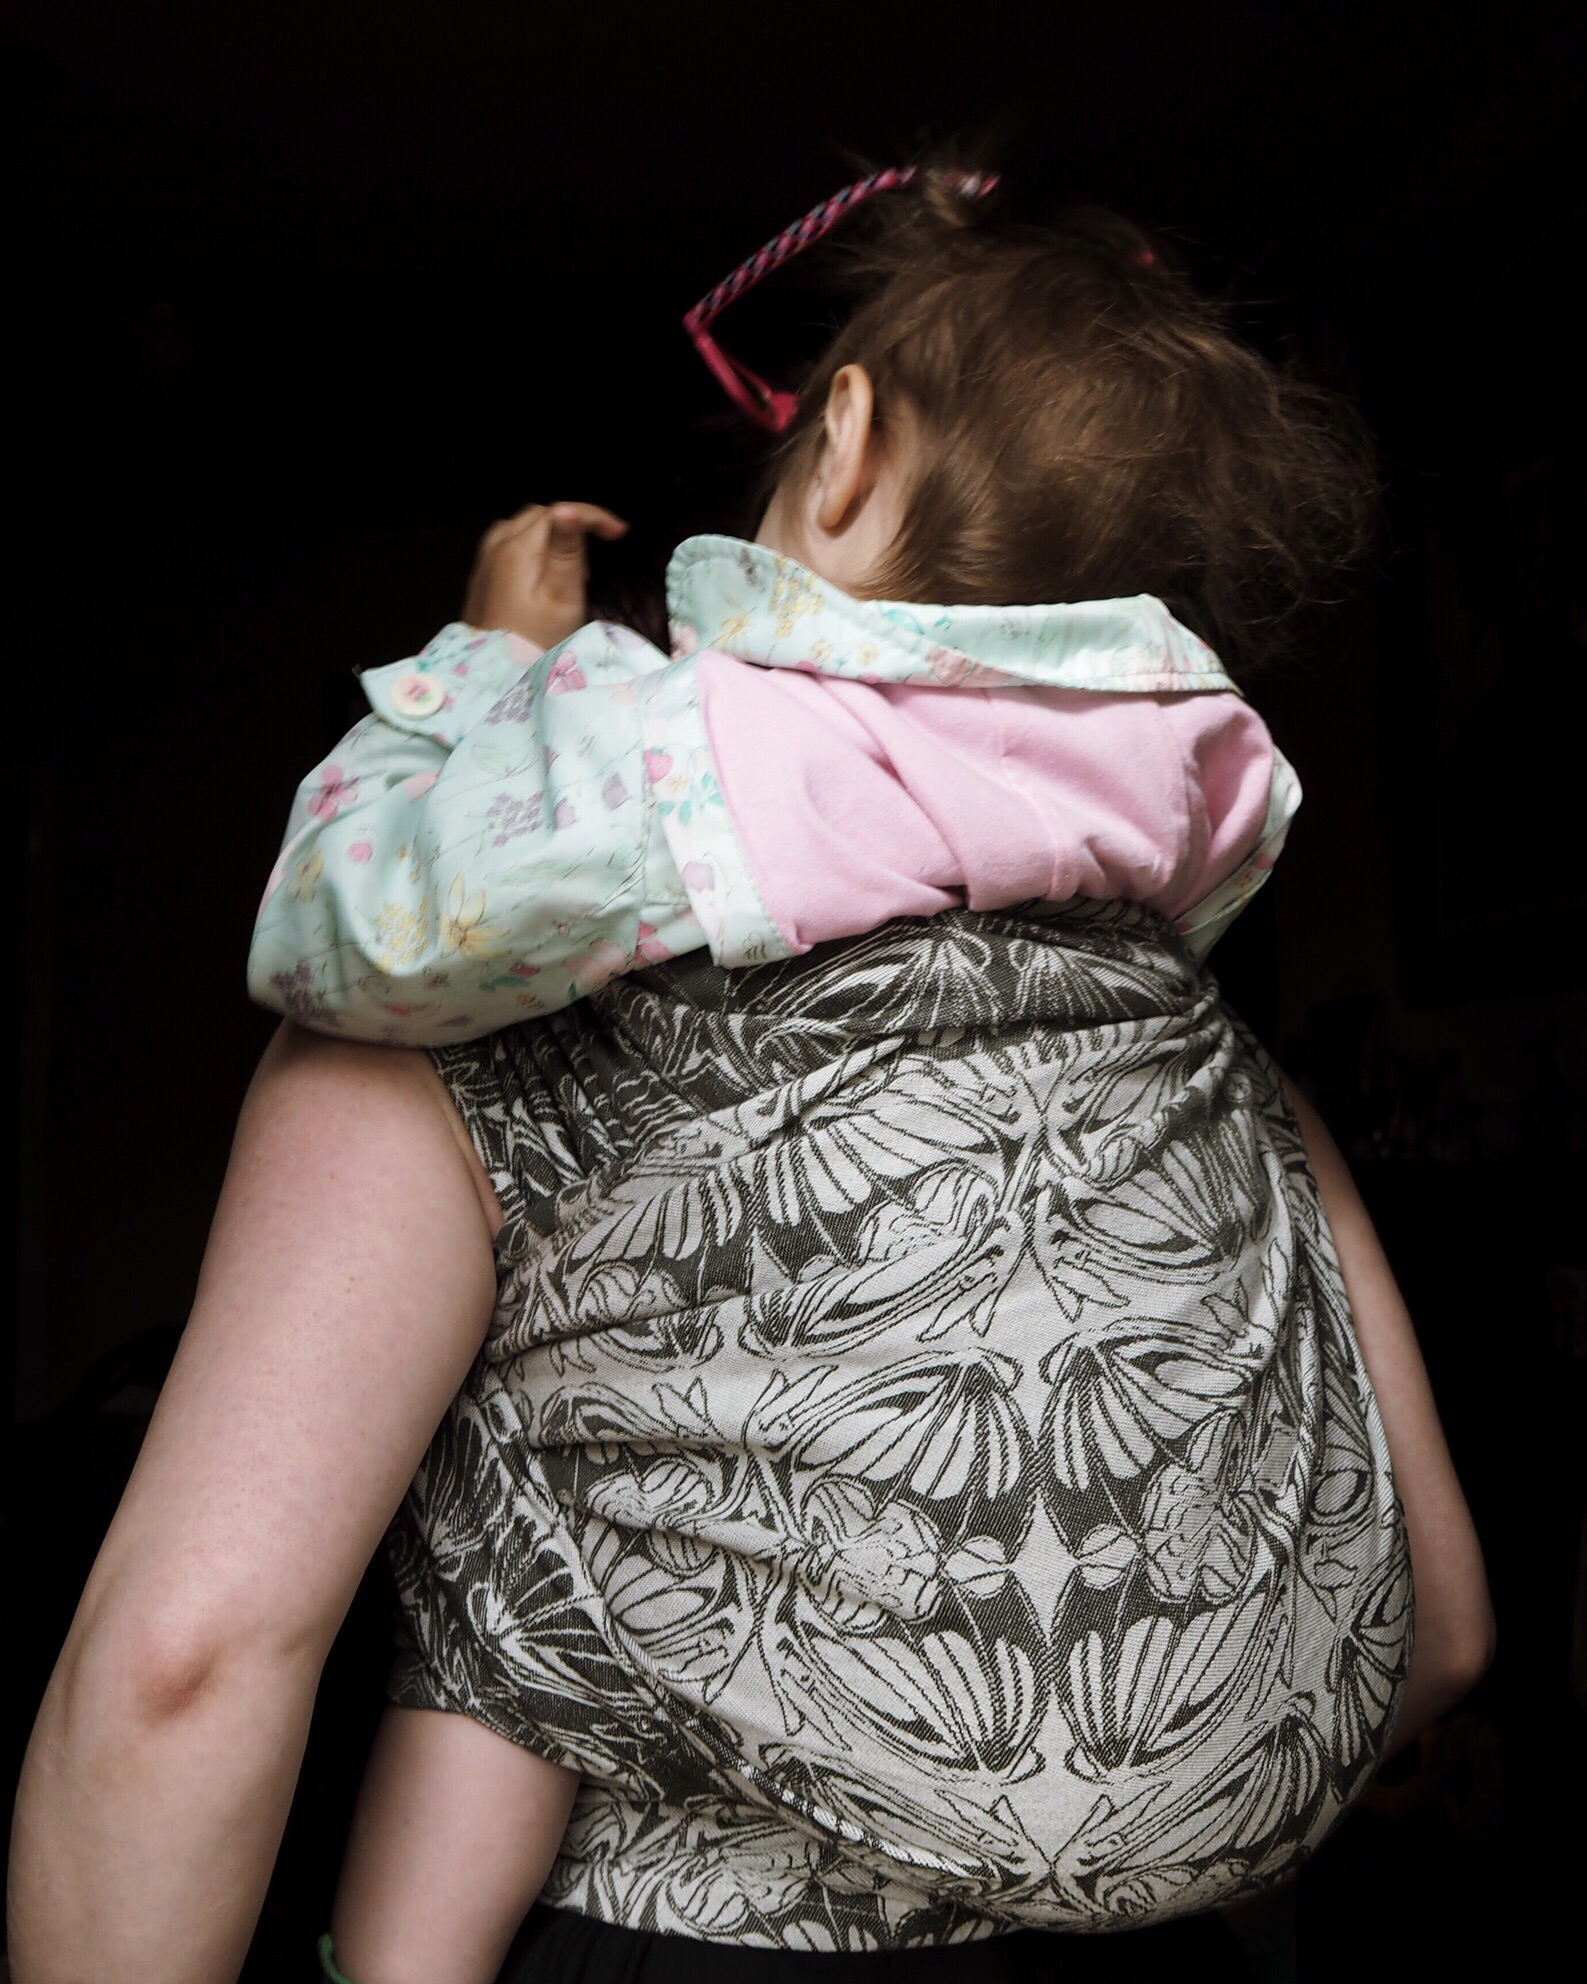 Child from the back with the reverse side of the wrap showing